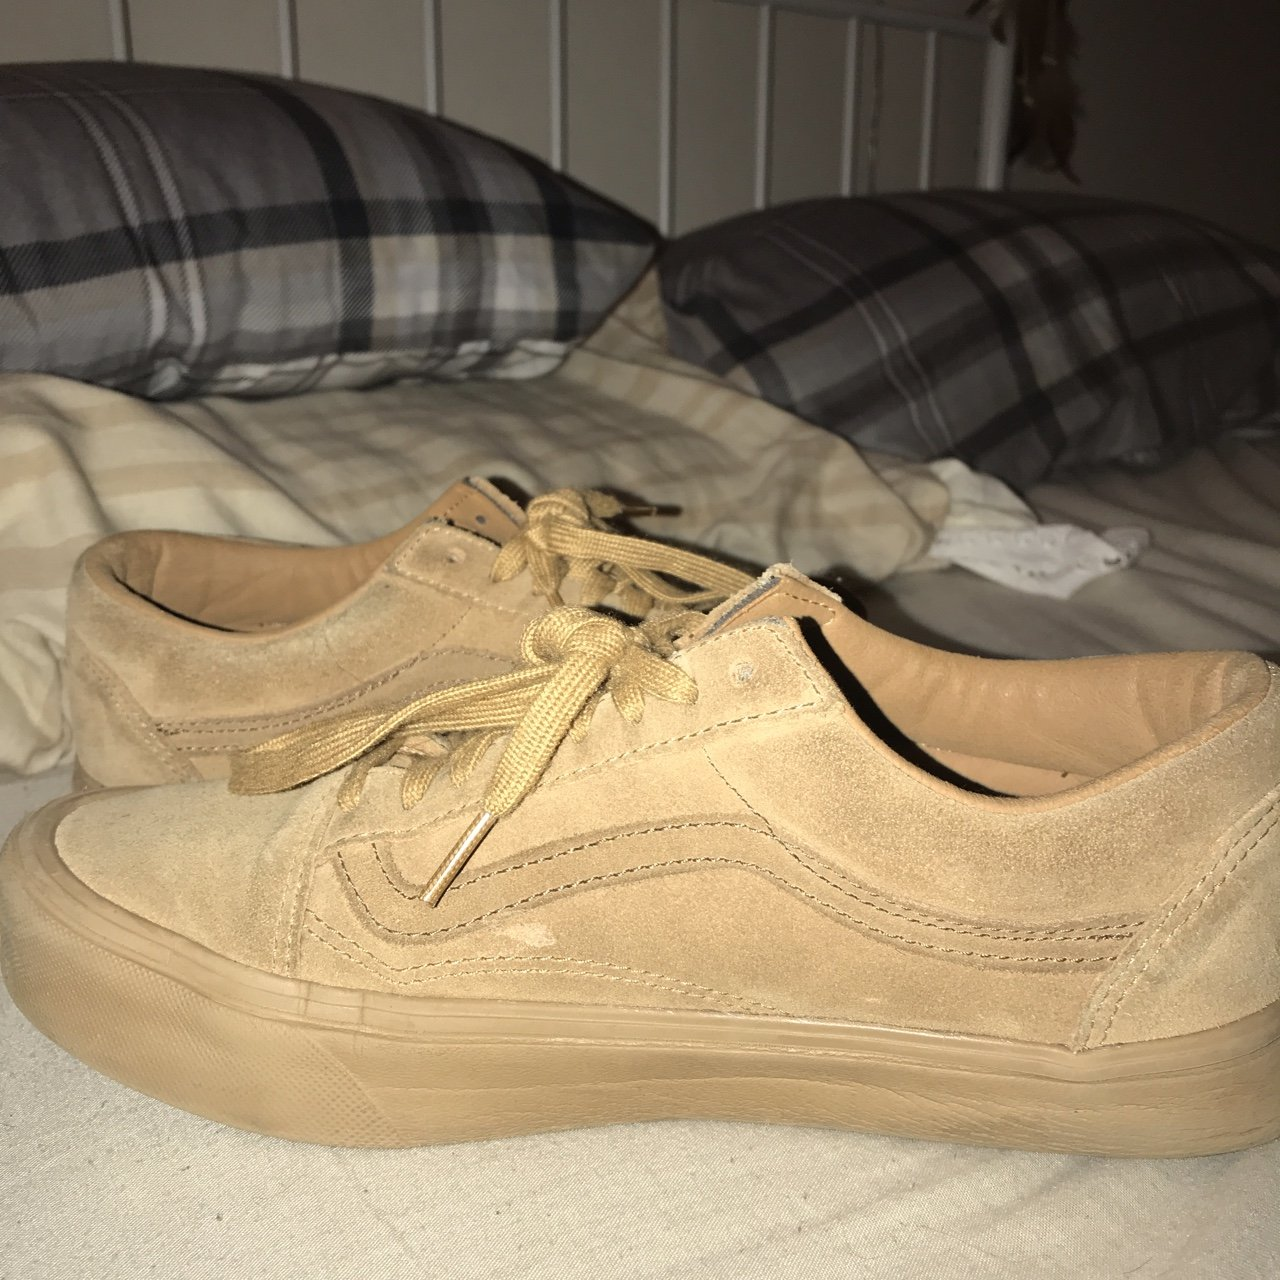 422dbbb408 TAN BROWN NUDE SUEDE VANS SIZE 6.5 but fits size 6 (they re - Depop